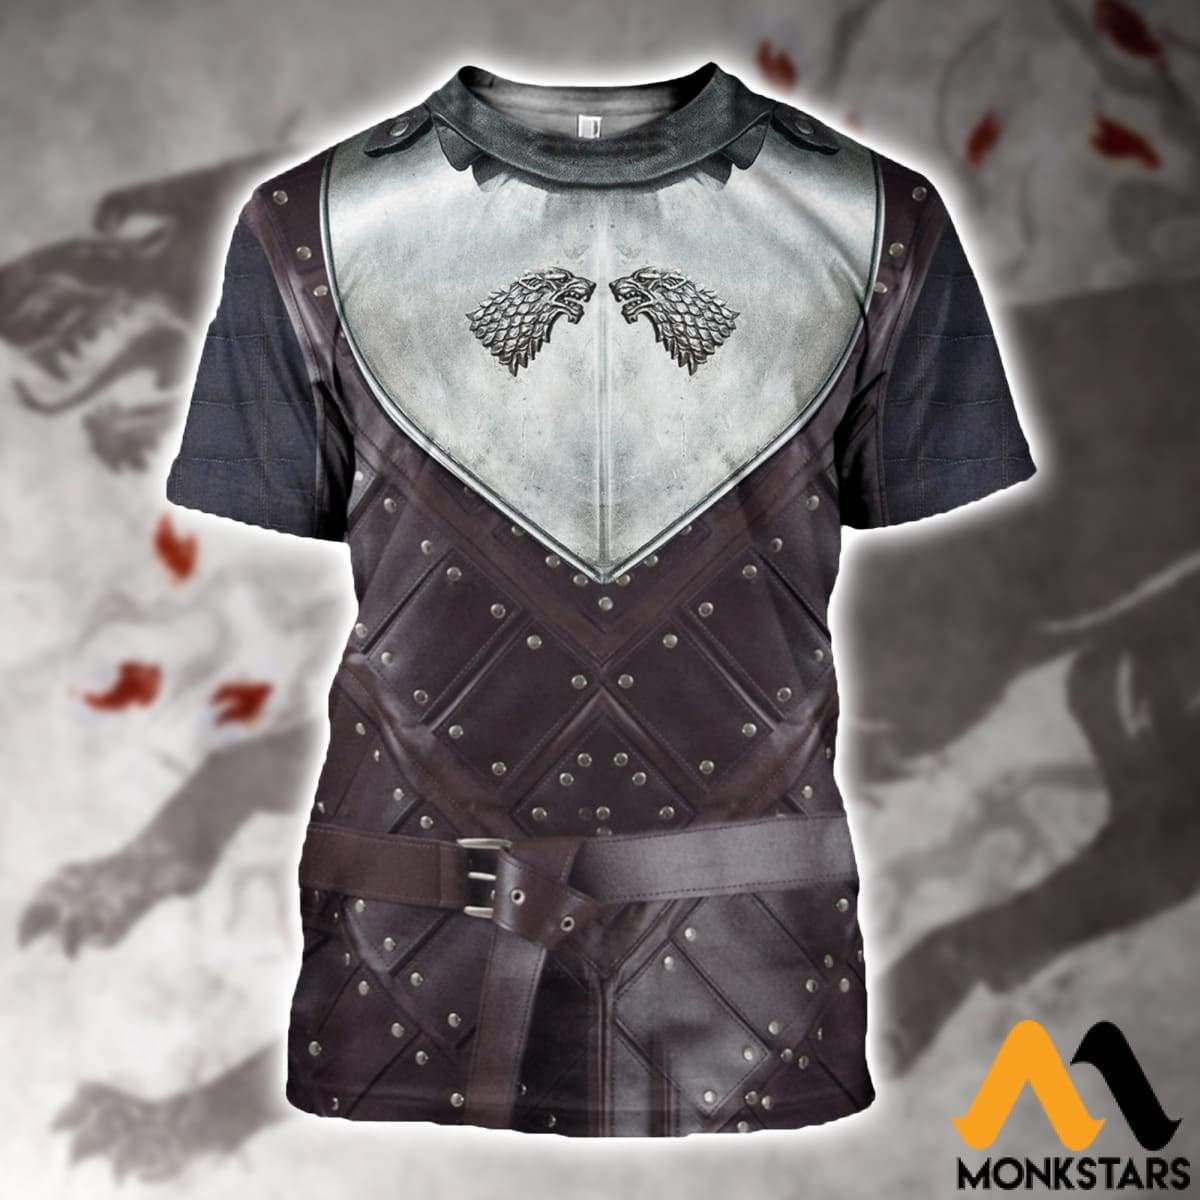 3D All Over Printed Stark Armor Tops T-Shirt / Xs Clothes